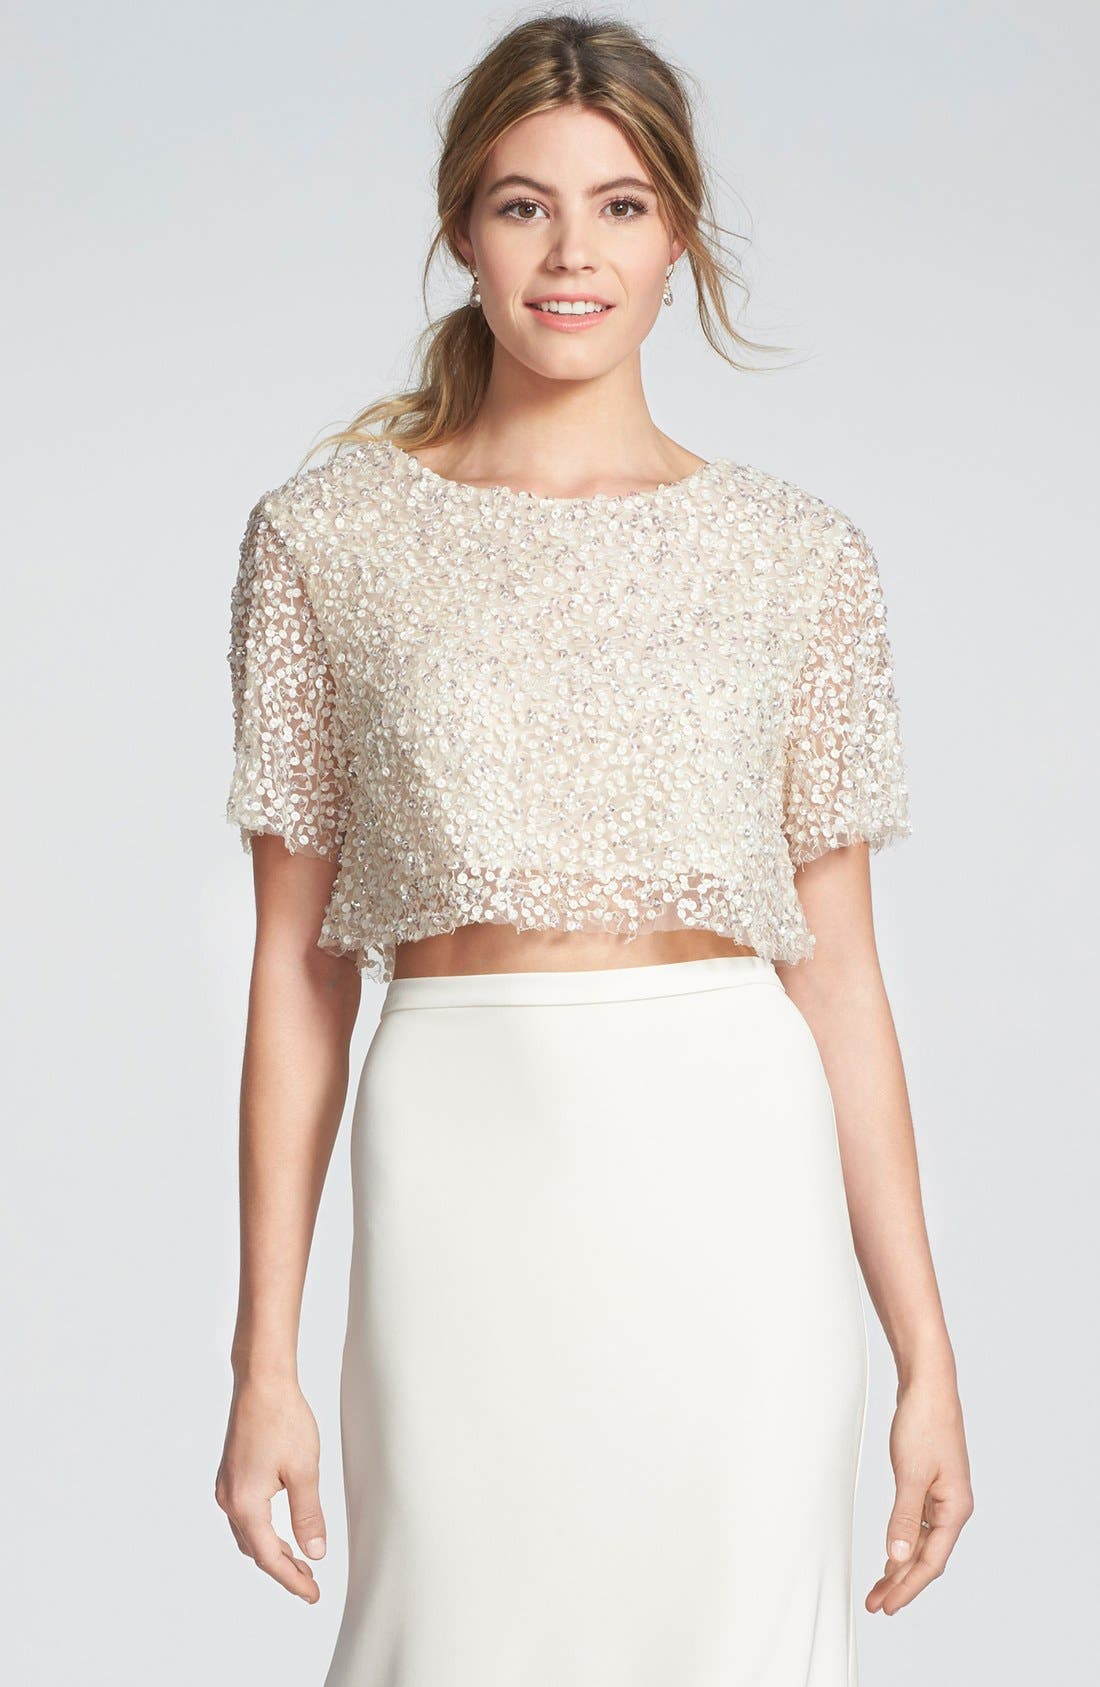 SARAH SEVEN Delancy Sequin Crop Top